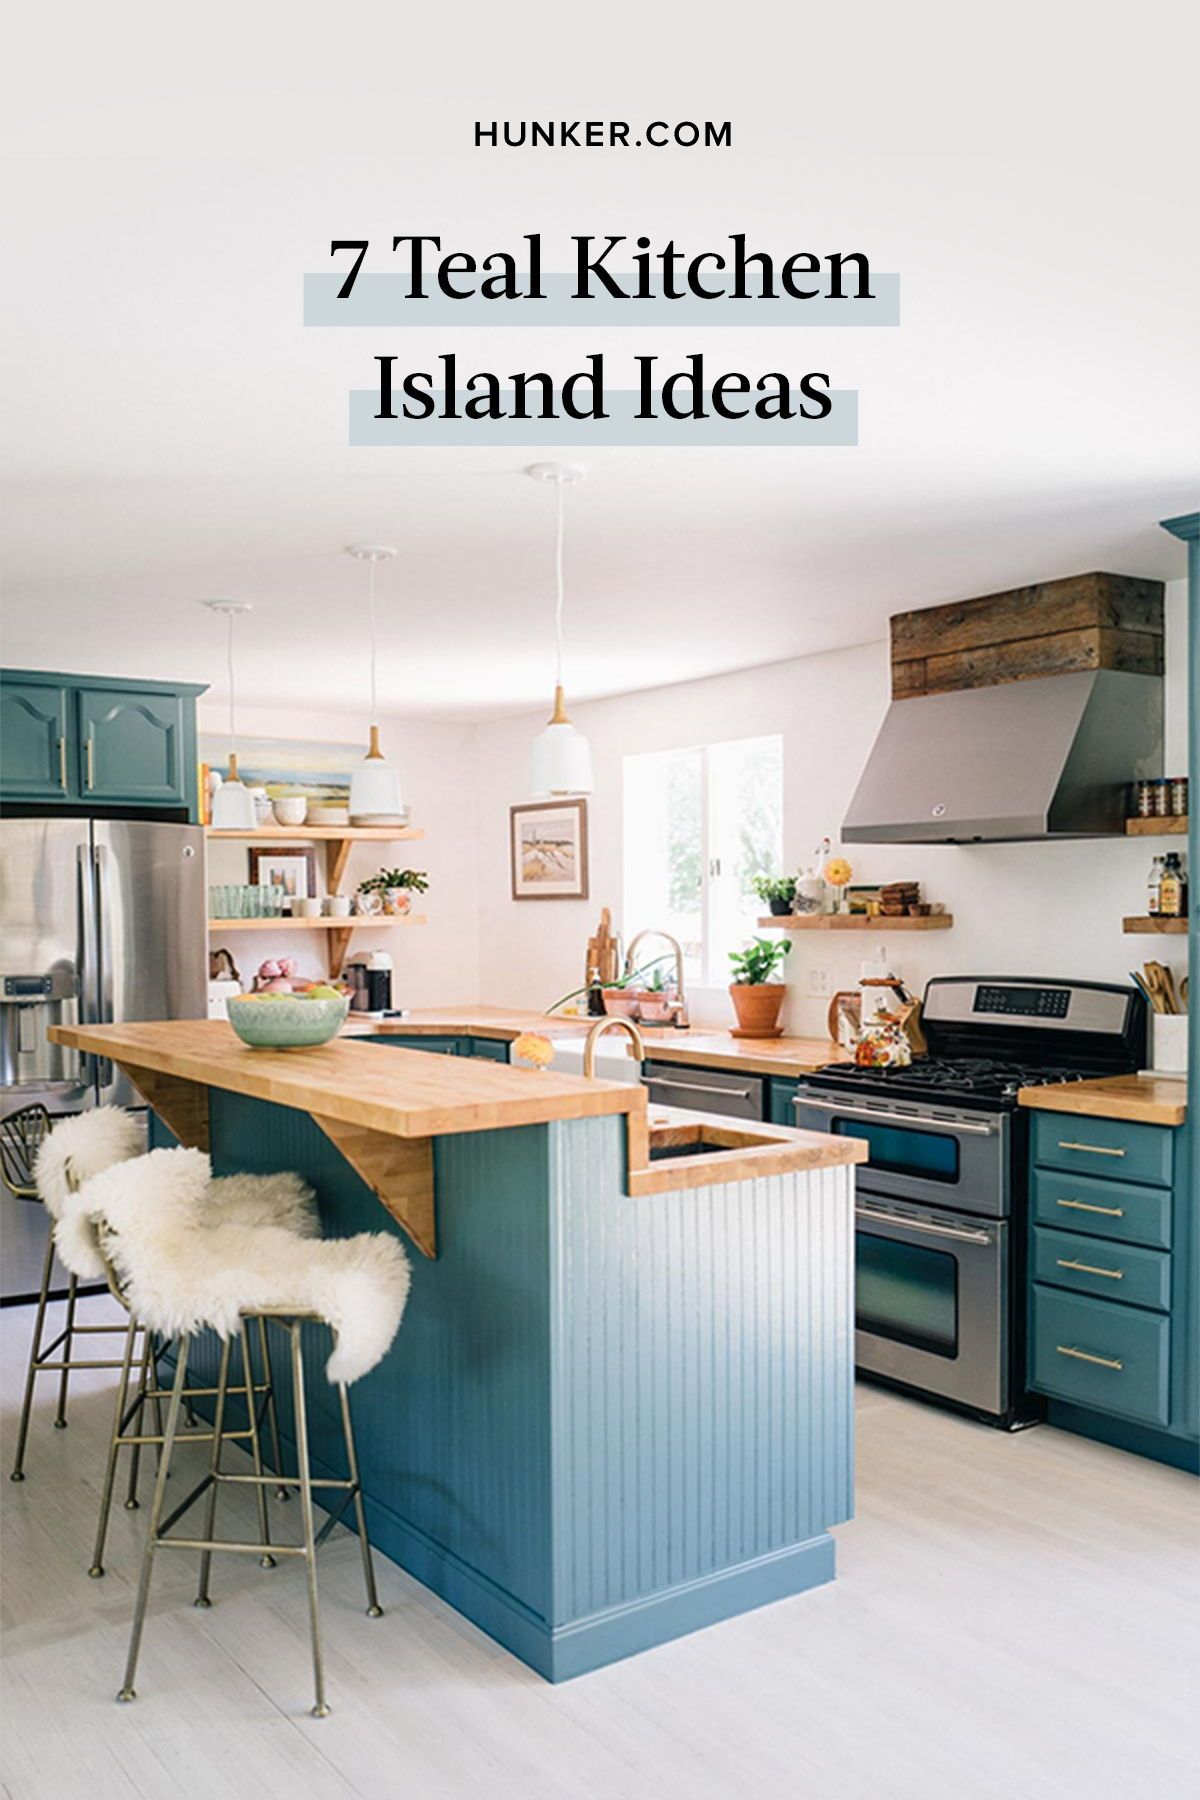 7 Teal Kitchen Island Ideas That Won T Give You The Blues Hunker Teal Kitchen Teal Kitchen Cabinets Kitchen Inspirations